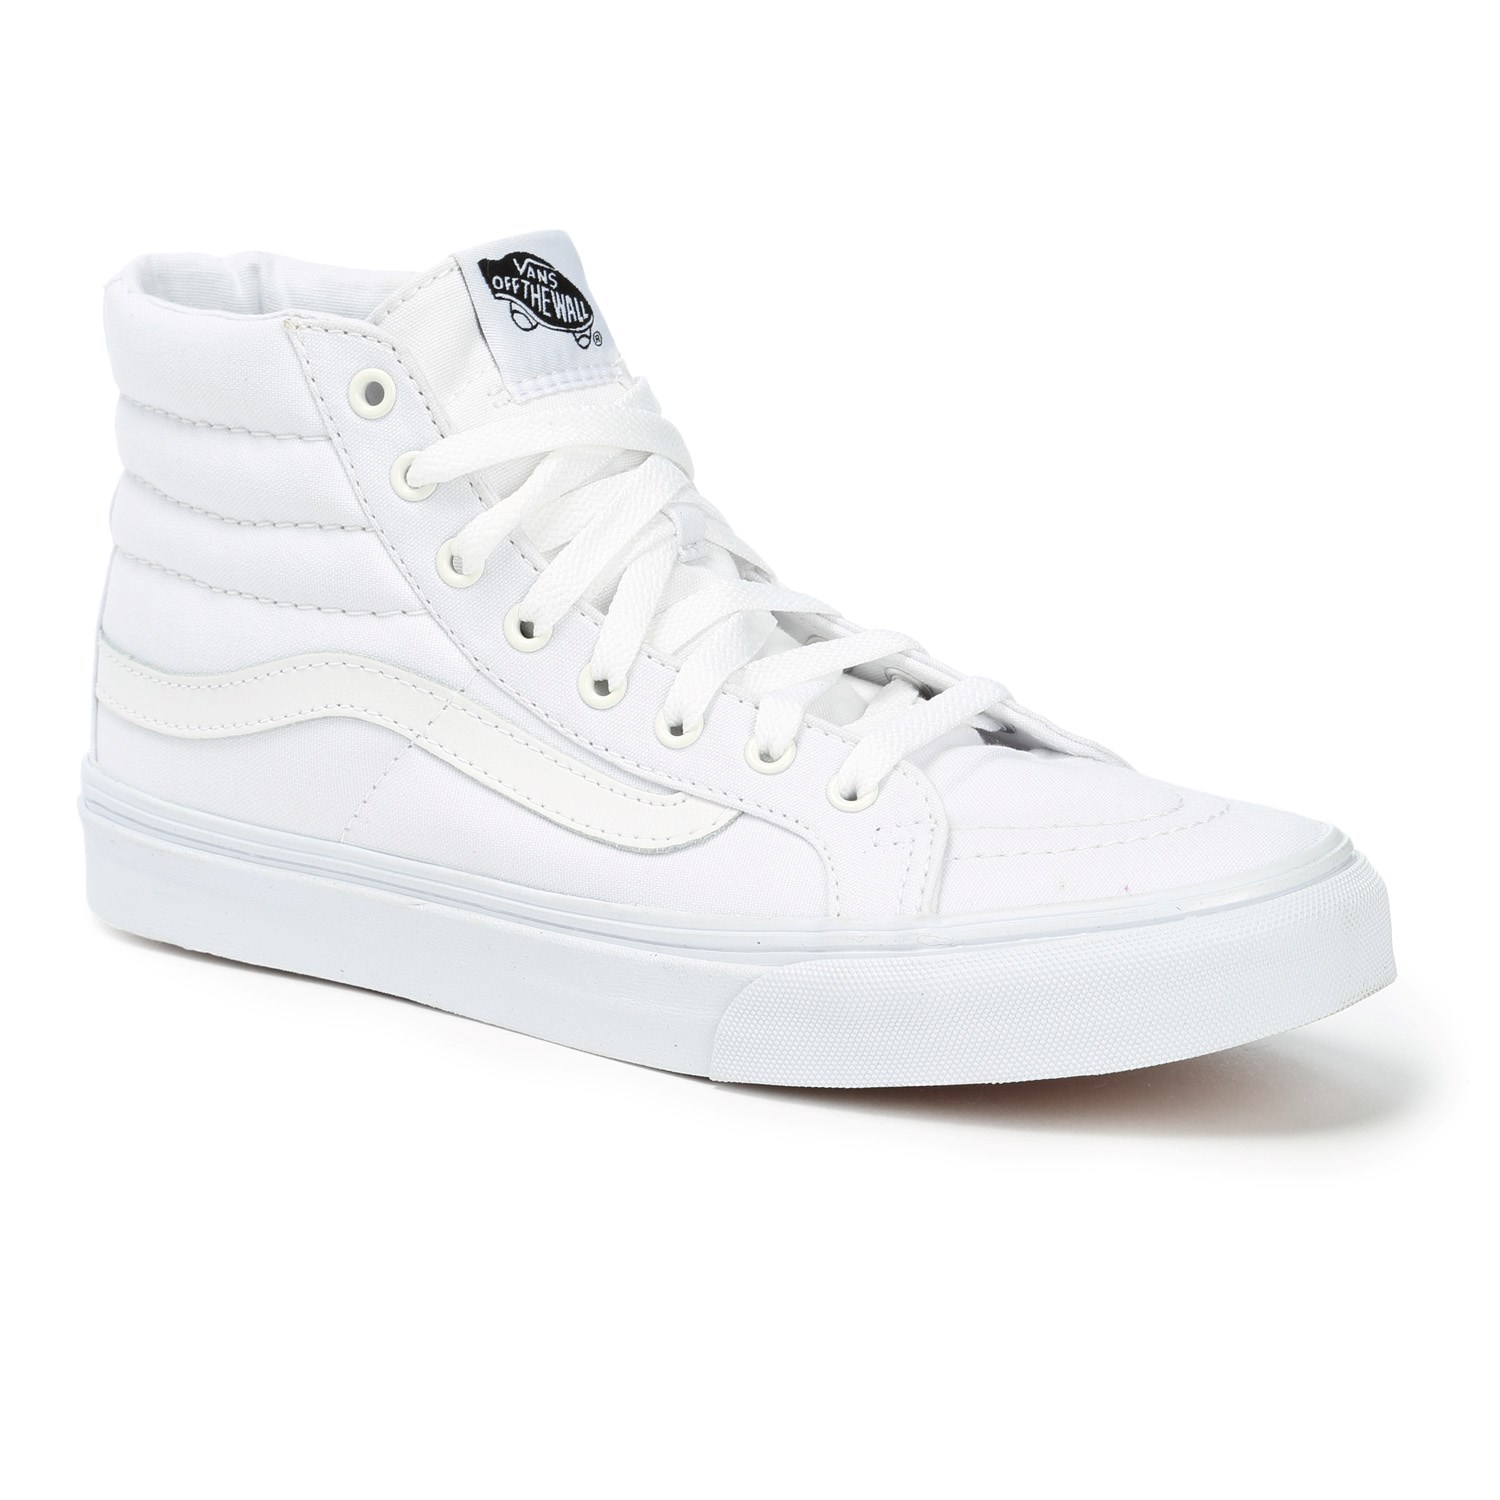 Shoes Hightop, Geometric Shoes, Vans High Tops Shoes, Vans Sk8, Tops Vans, Vans Hightop, Vans Shoes Woman High Tops, Awesome Vans Shoes, Vans Shoes High